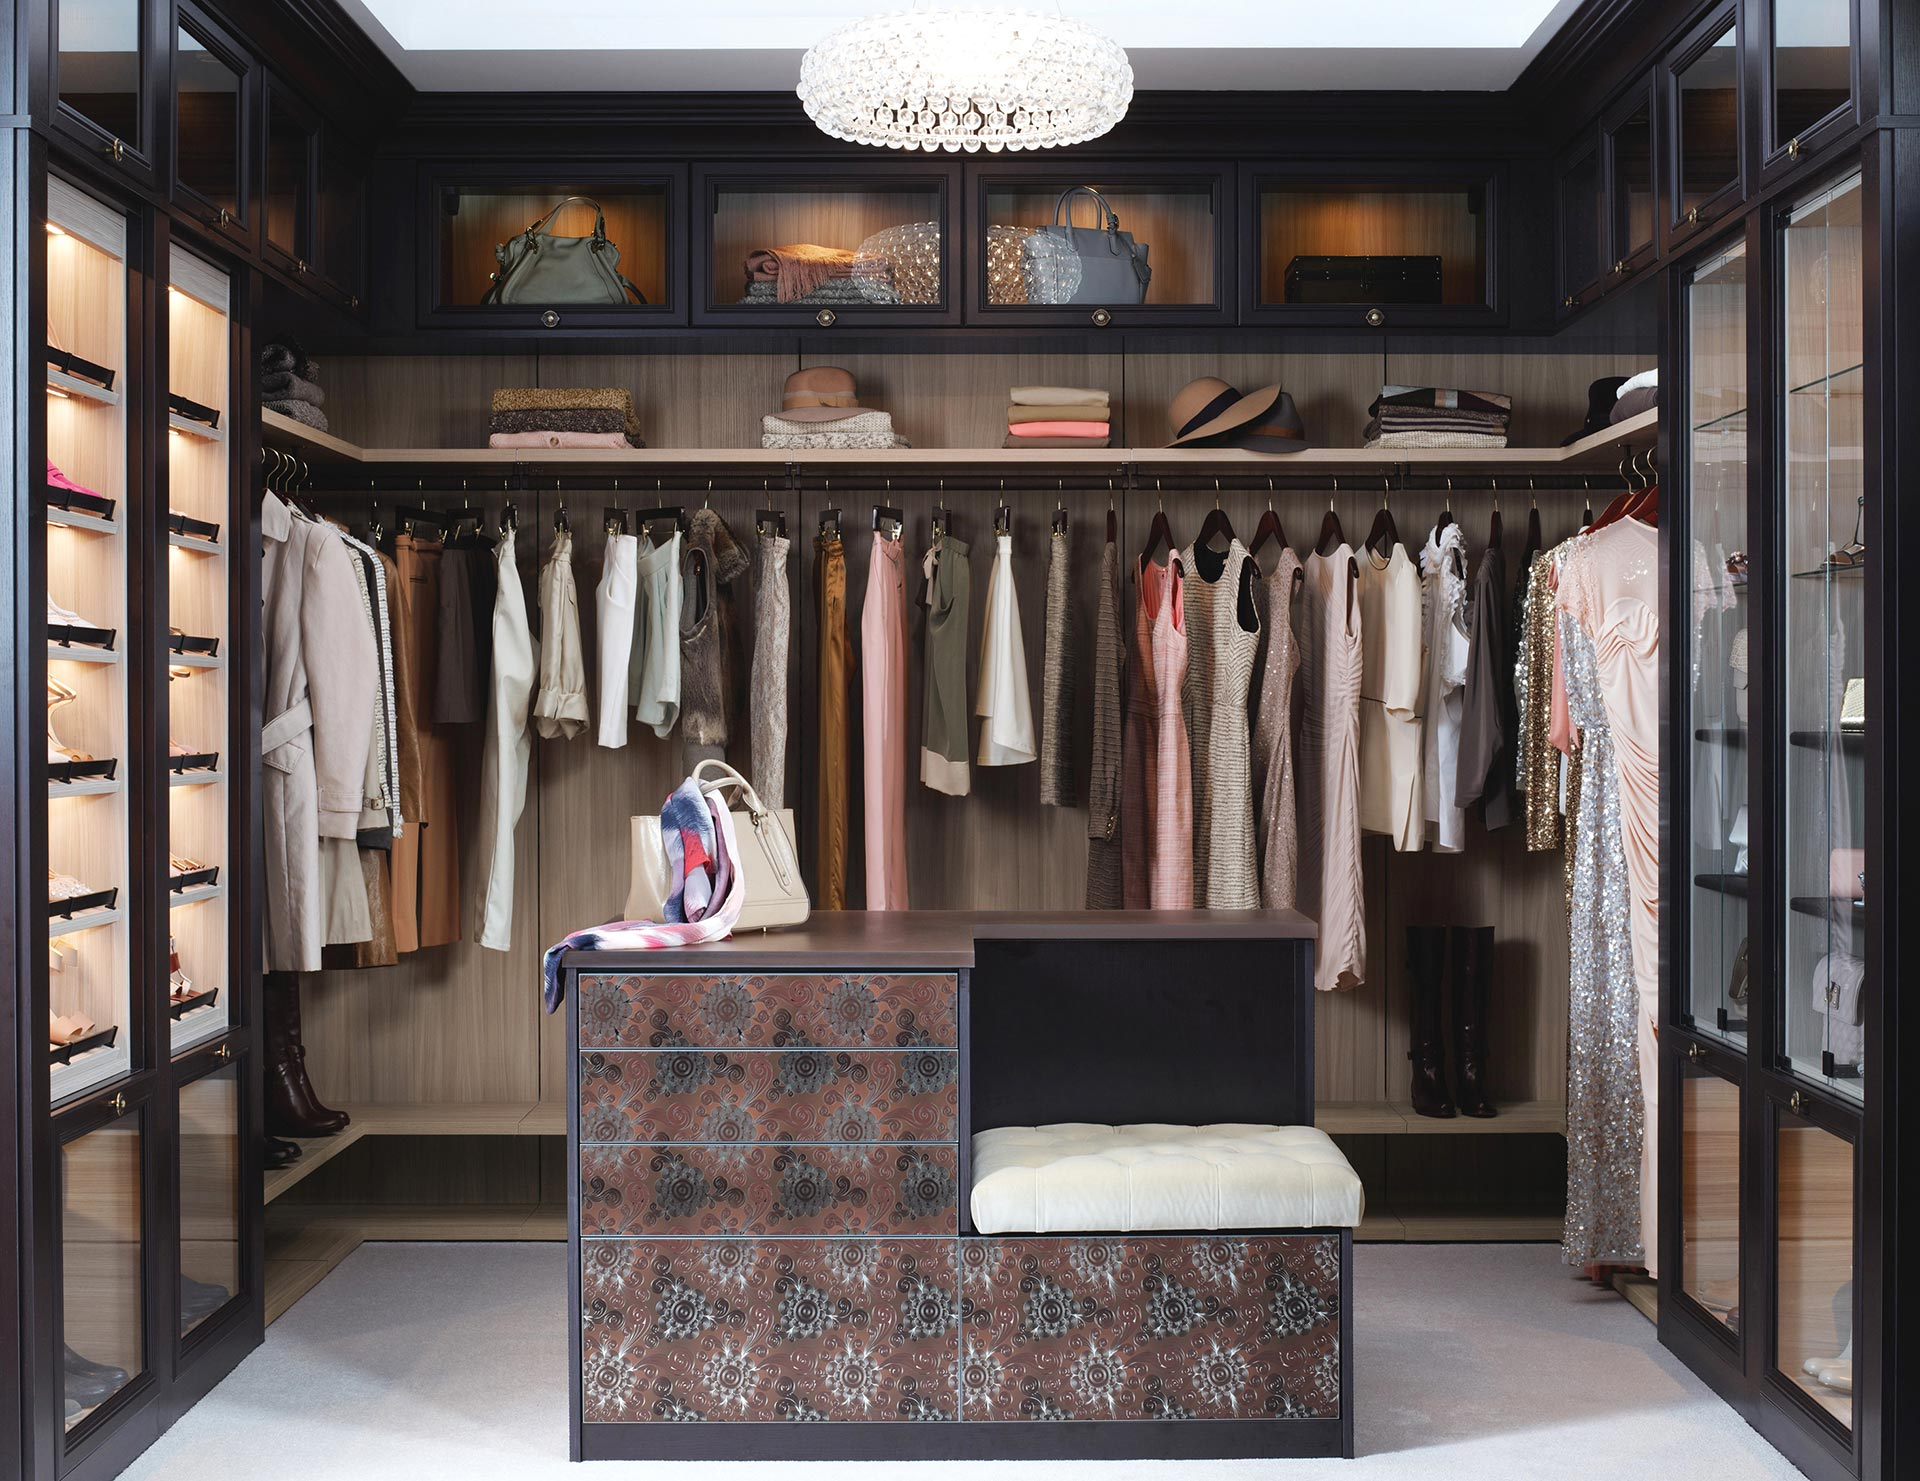 a119f026fa83a Walk In Closet Systems | Walk-In Closet Design Ideas | California ...